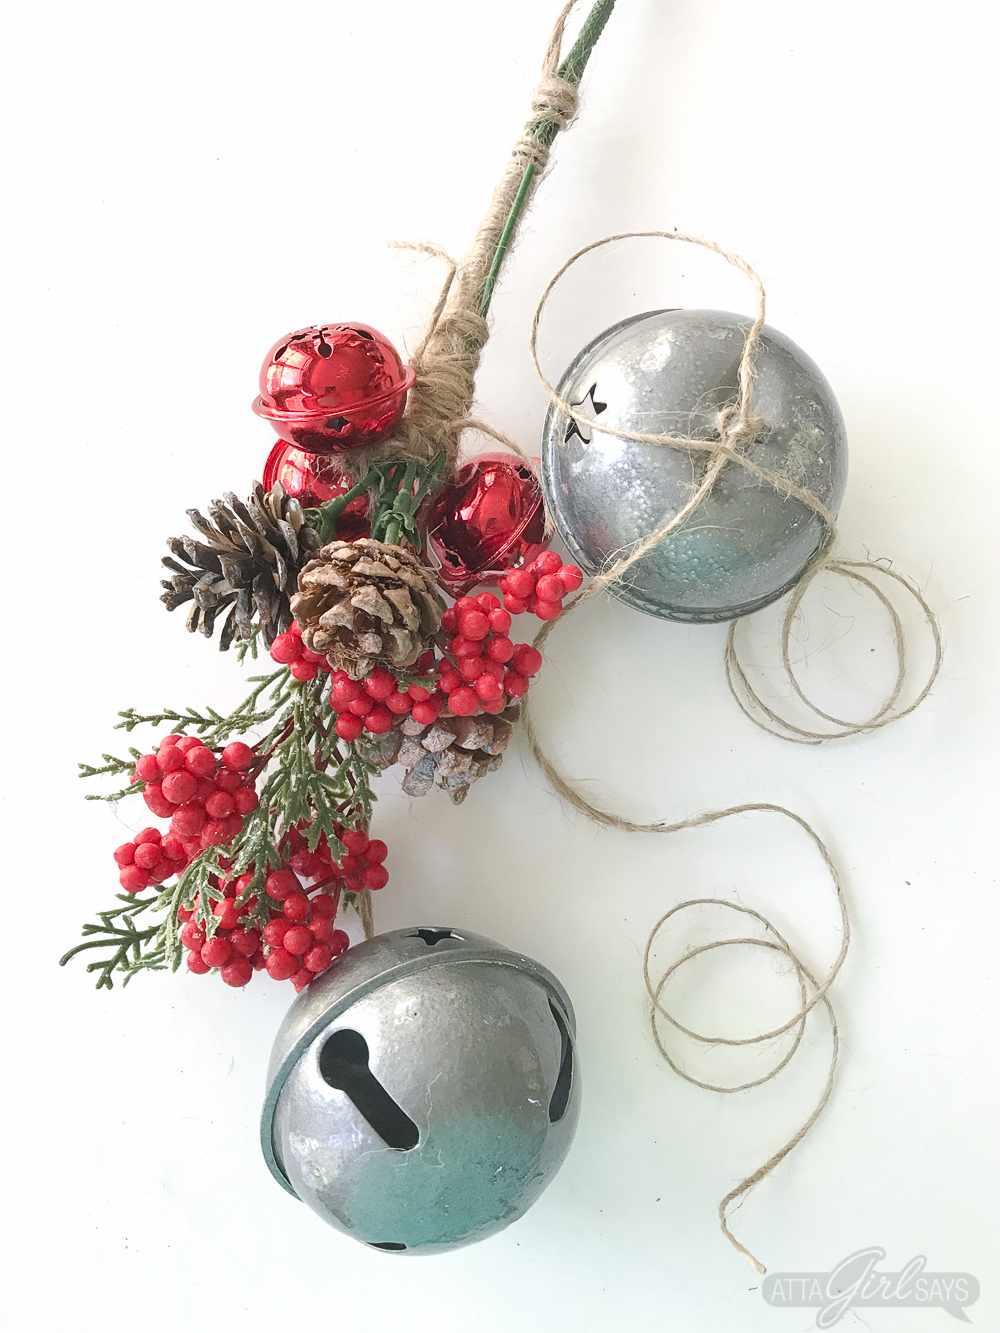 Vintage style jingle bell christmas swag atta girl says whip up a jingle bells christmas swag for your front door for just a few dollars rubansaba